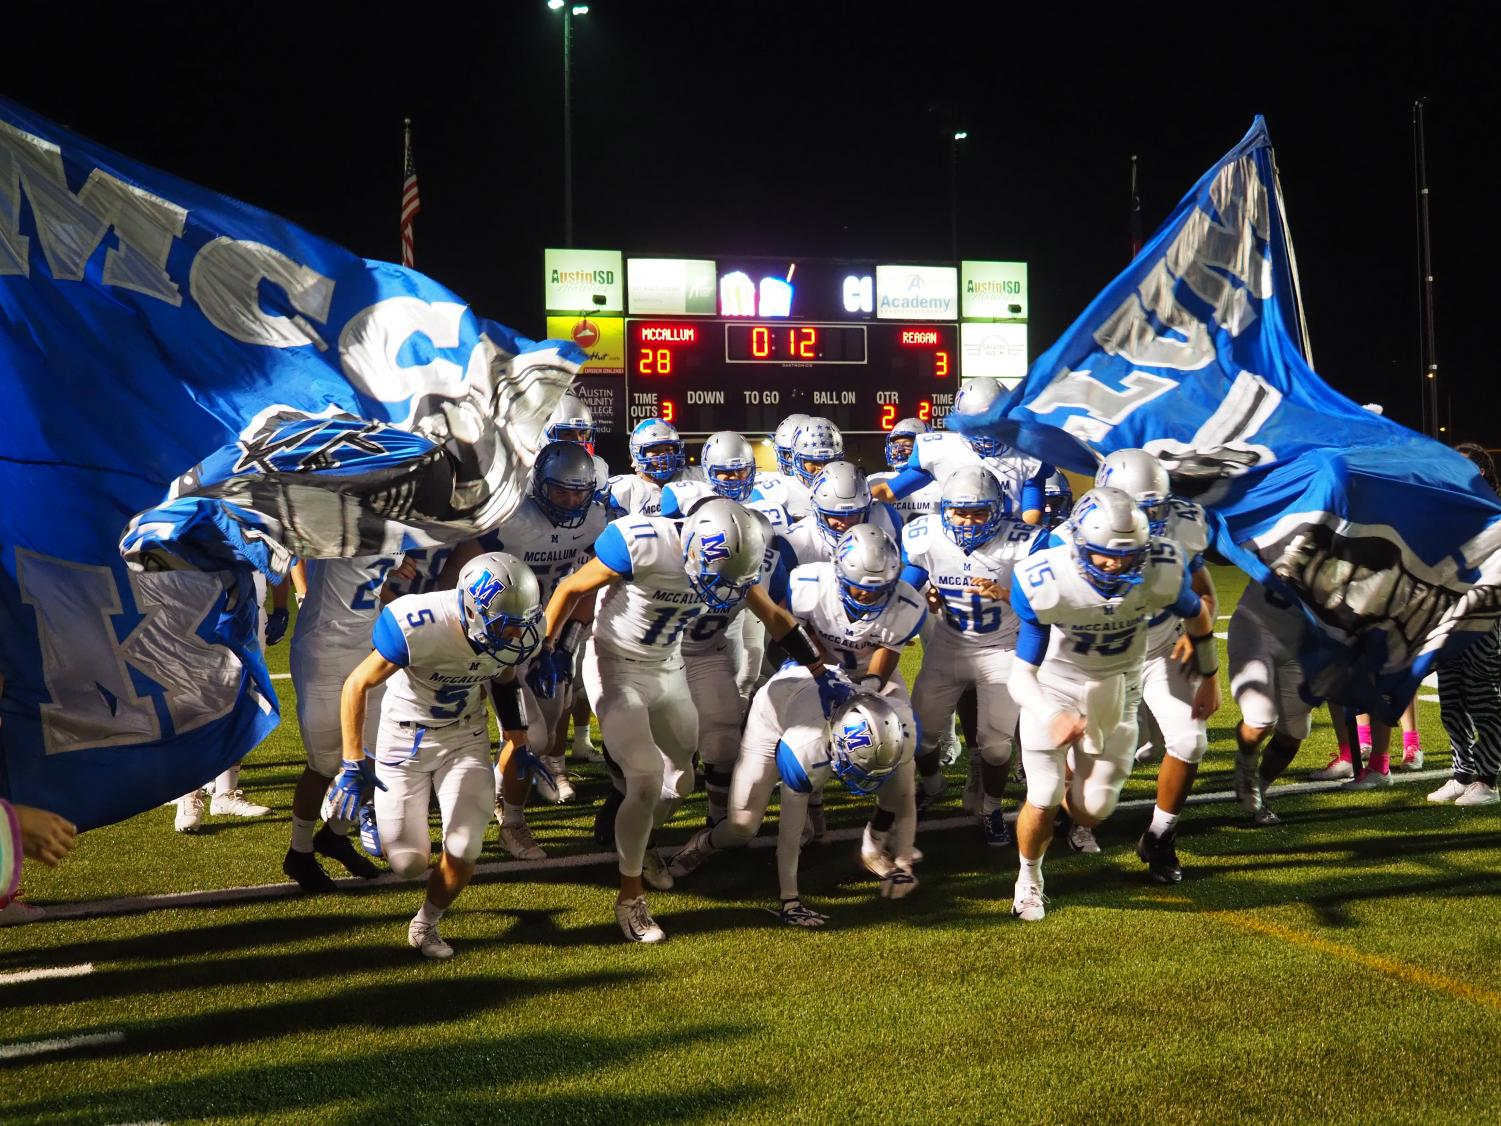 DAWGHOUSE: Varsity football players charge out of the McCallum banner after halftime, leading the Reagan Raiders 28-3. Photo by Gregory James